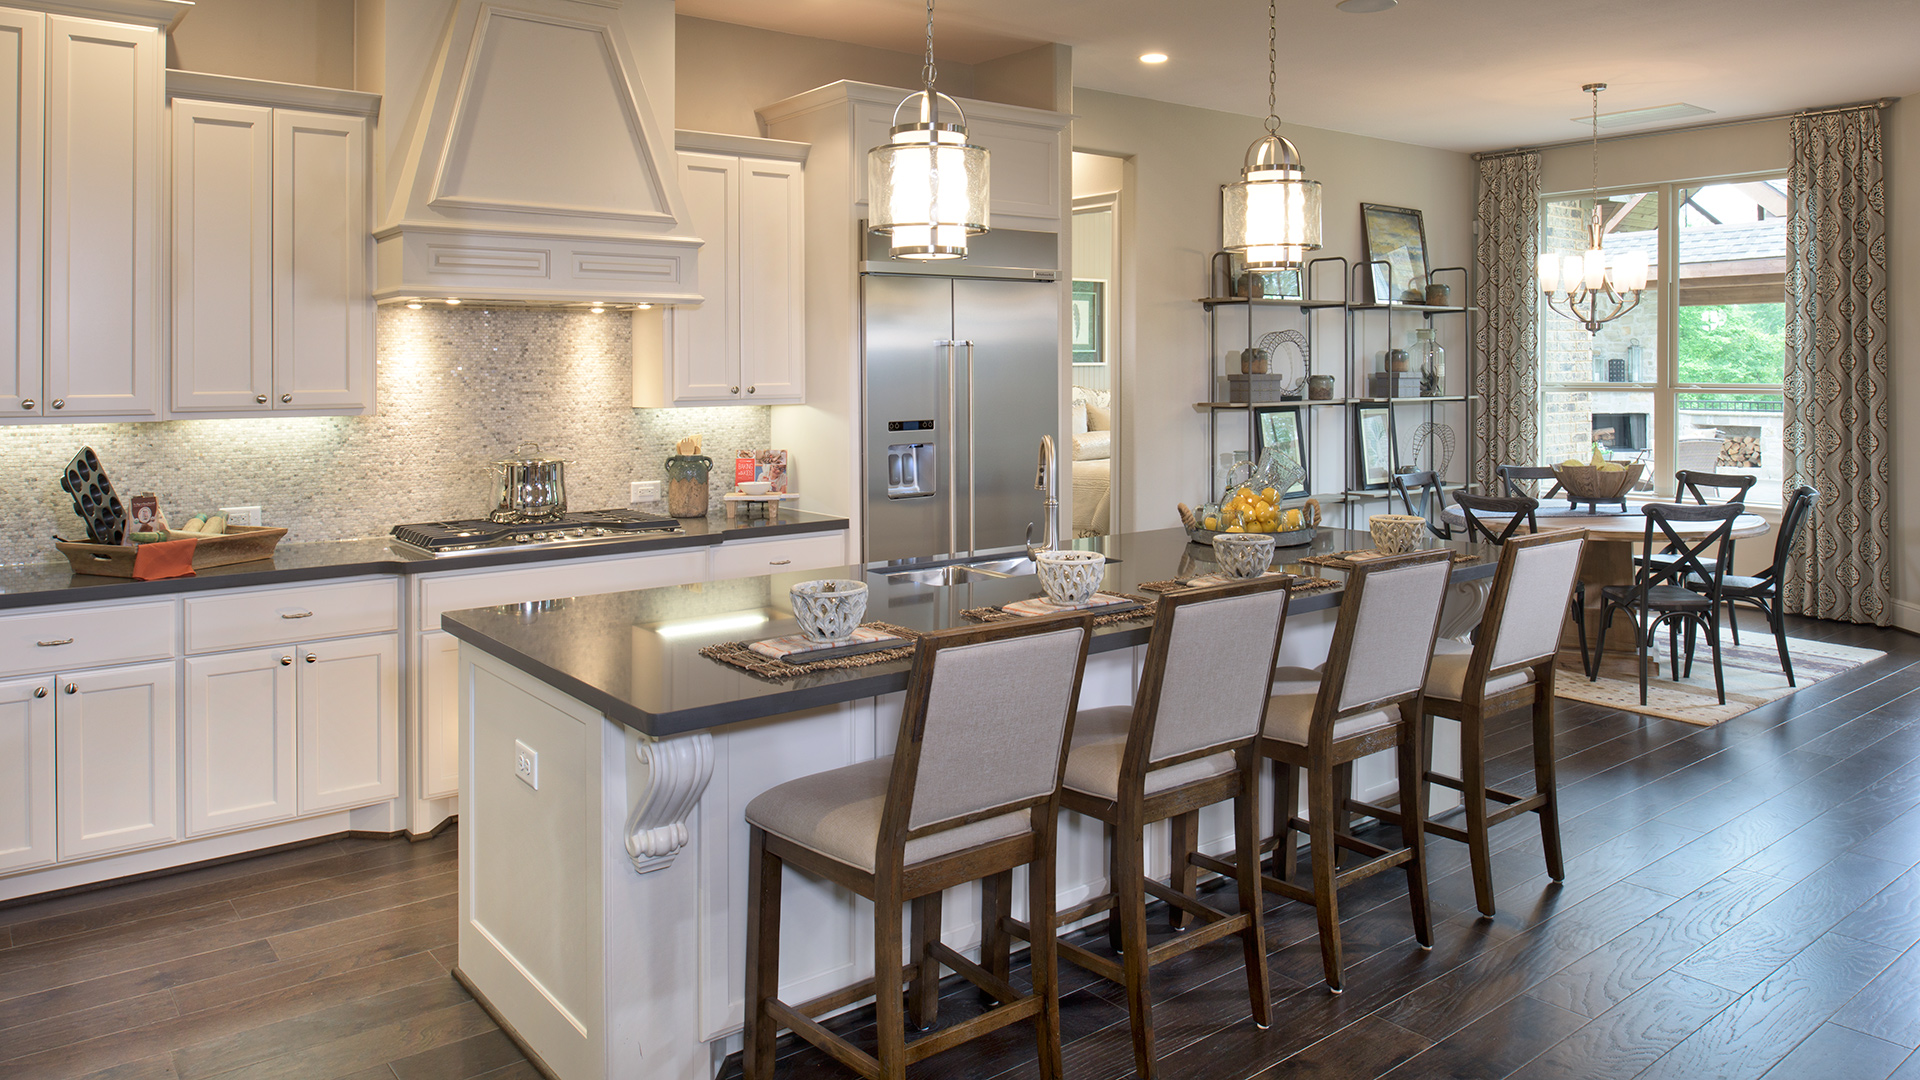 Kitchen Model Of The Adalyn Home Design Available In Magnolia, TX